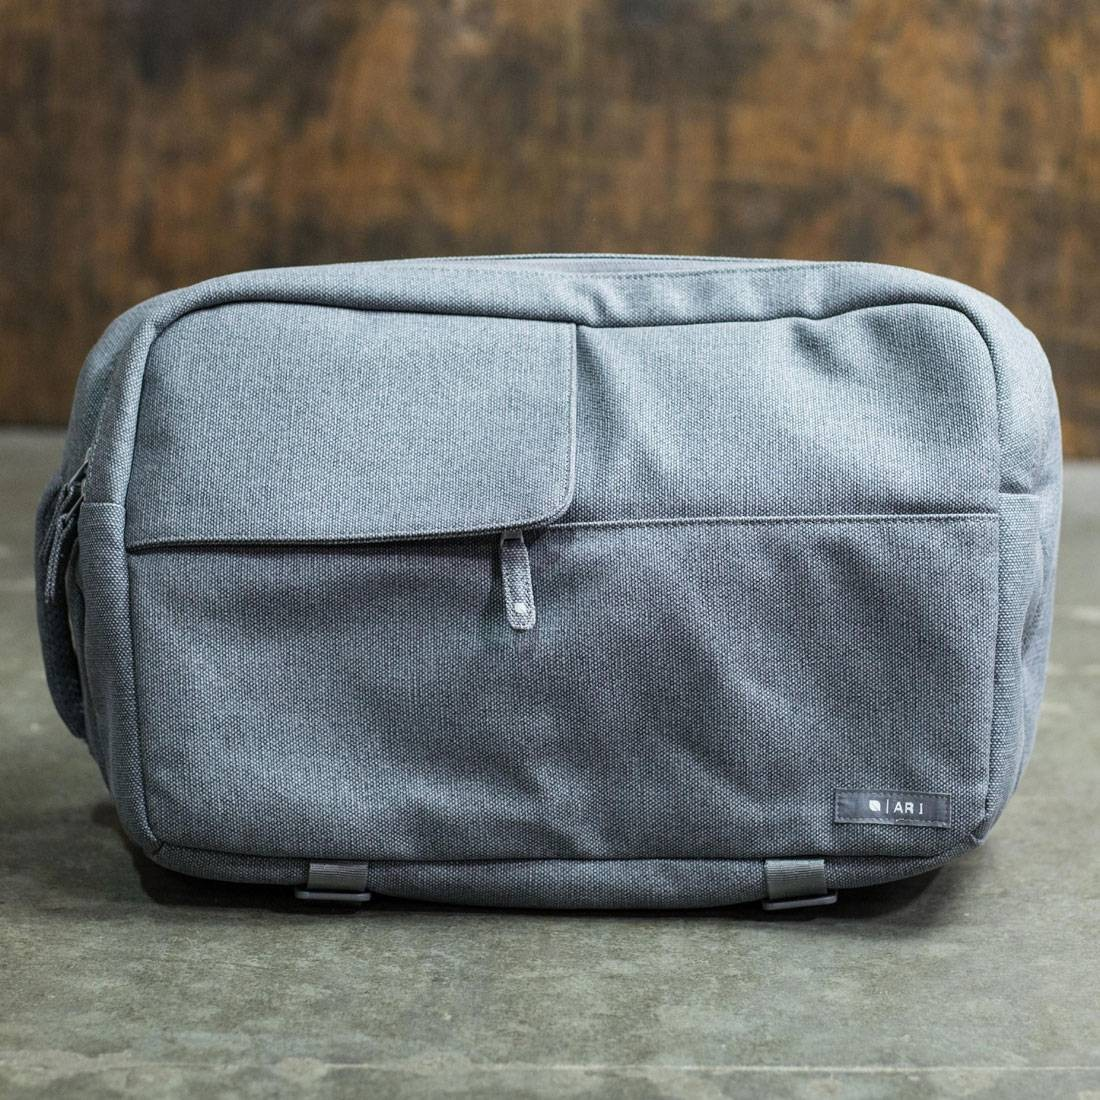 Incase x Ari Marcopoulos Camera Bag (gray)